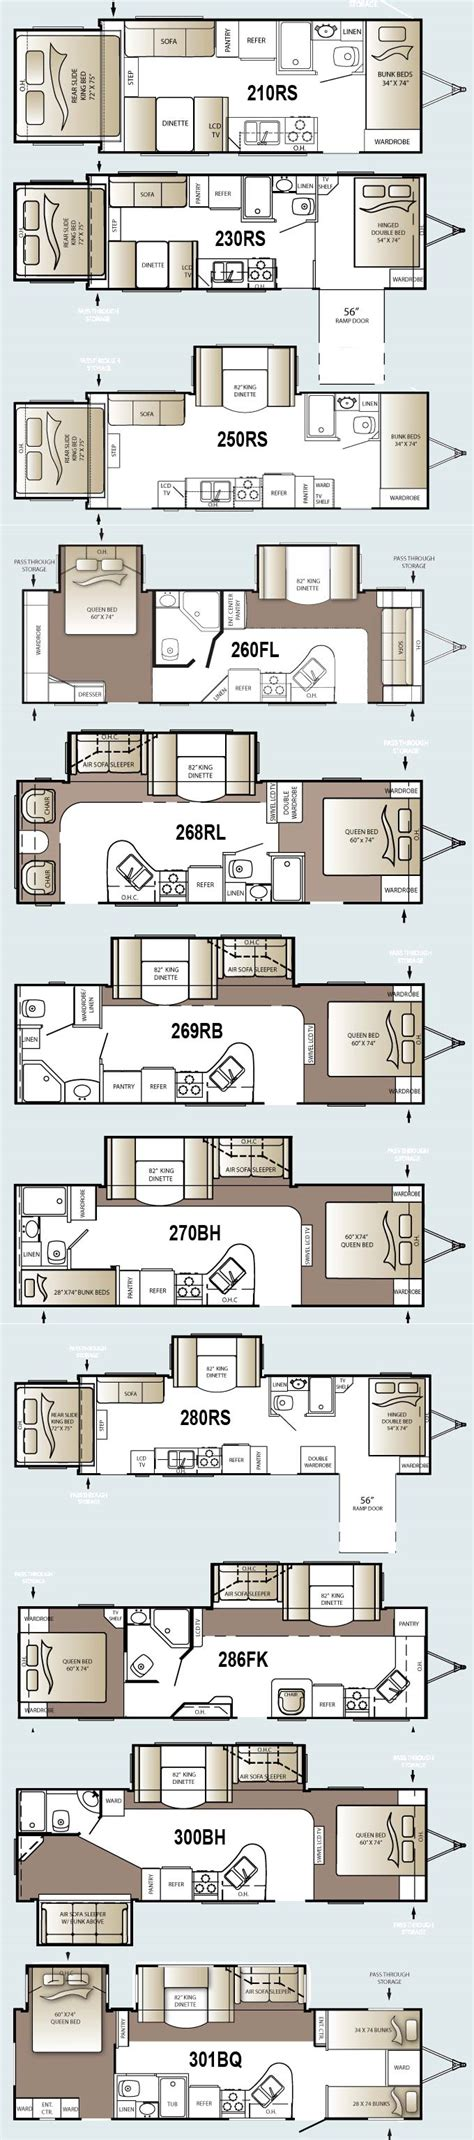 keystone travel trailer floor plans keystone outback travel trailer floorplans large picture